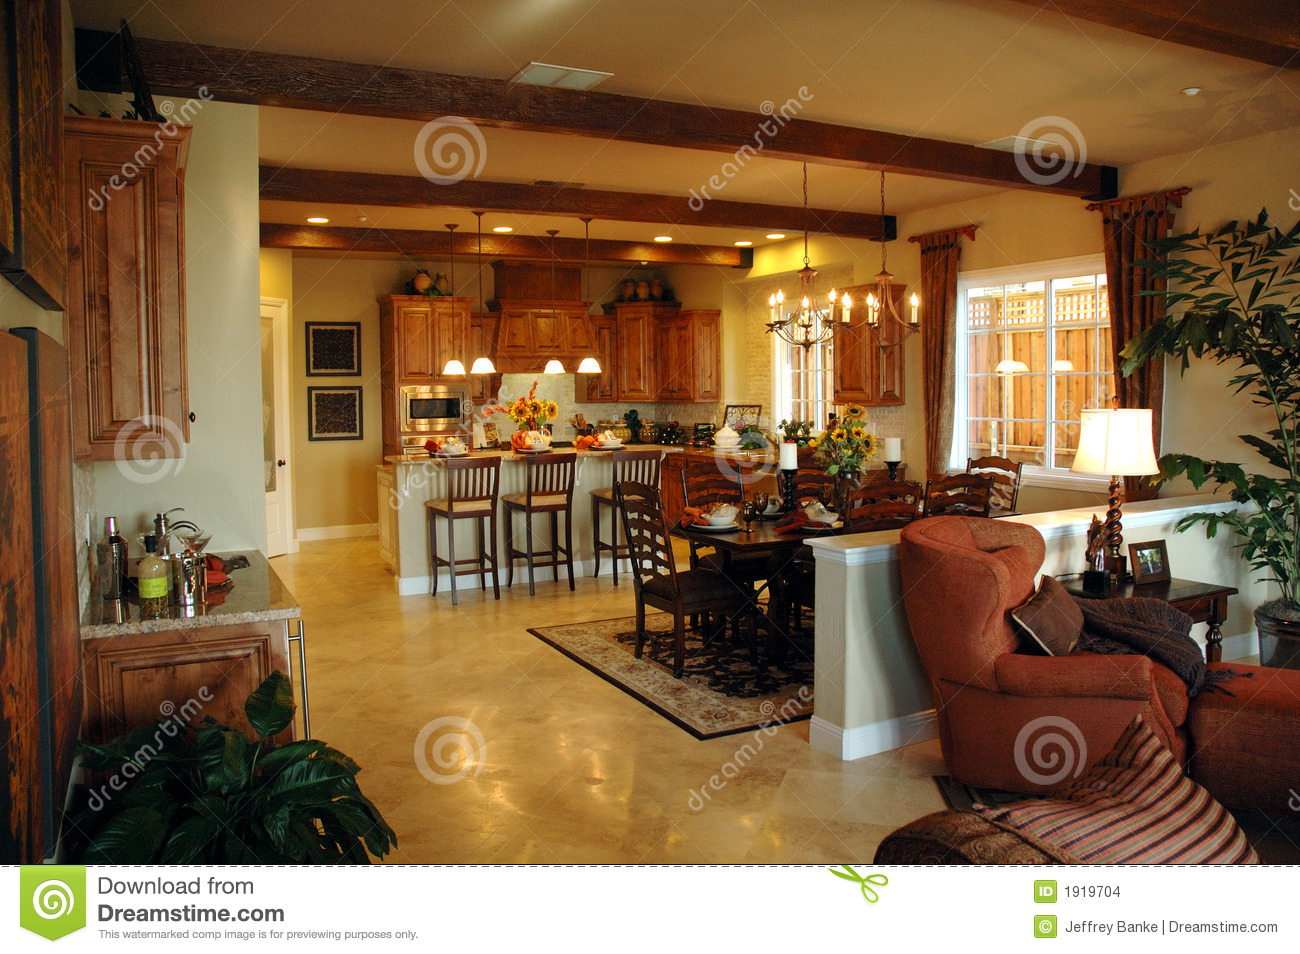 Stock Images Open Plan Kitchen Area Image1919704 on Family Room Kitchen Open Floor Plan